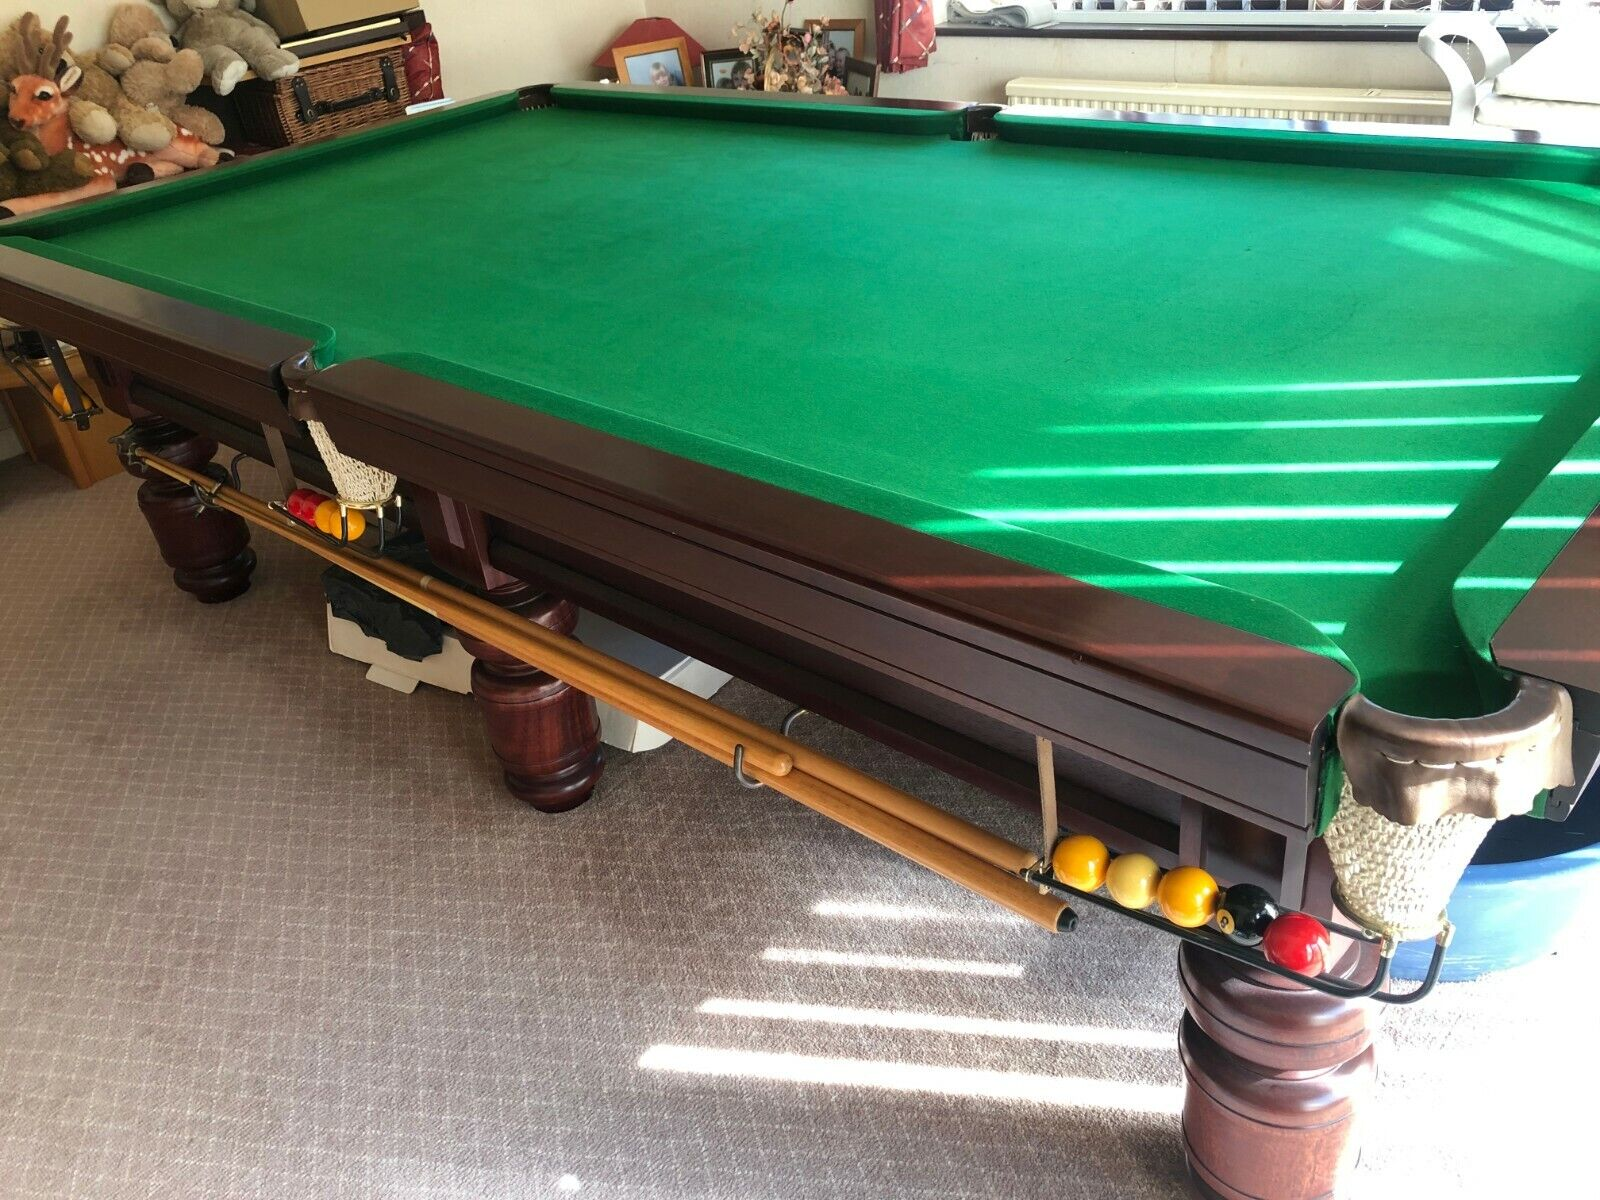 9 foot slate bed snooker table 6 legs with accessories including cues, light etc